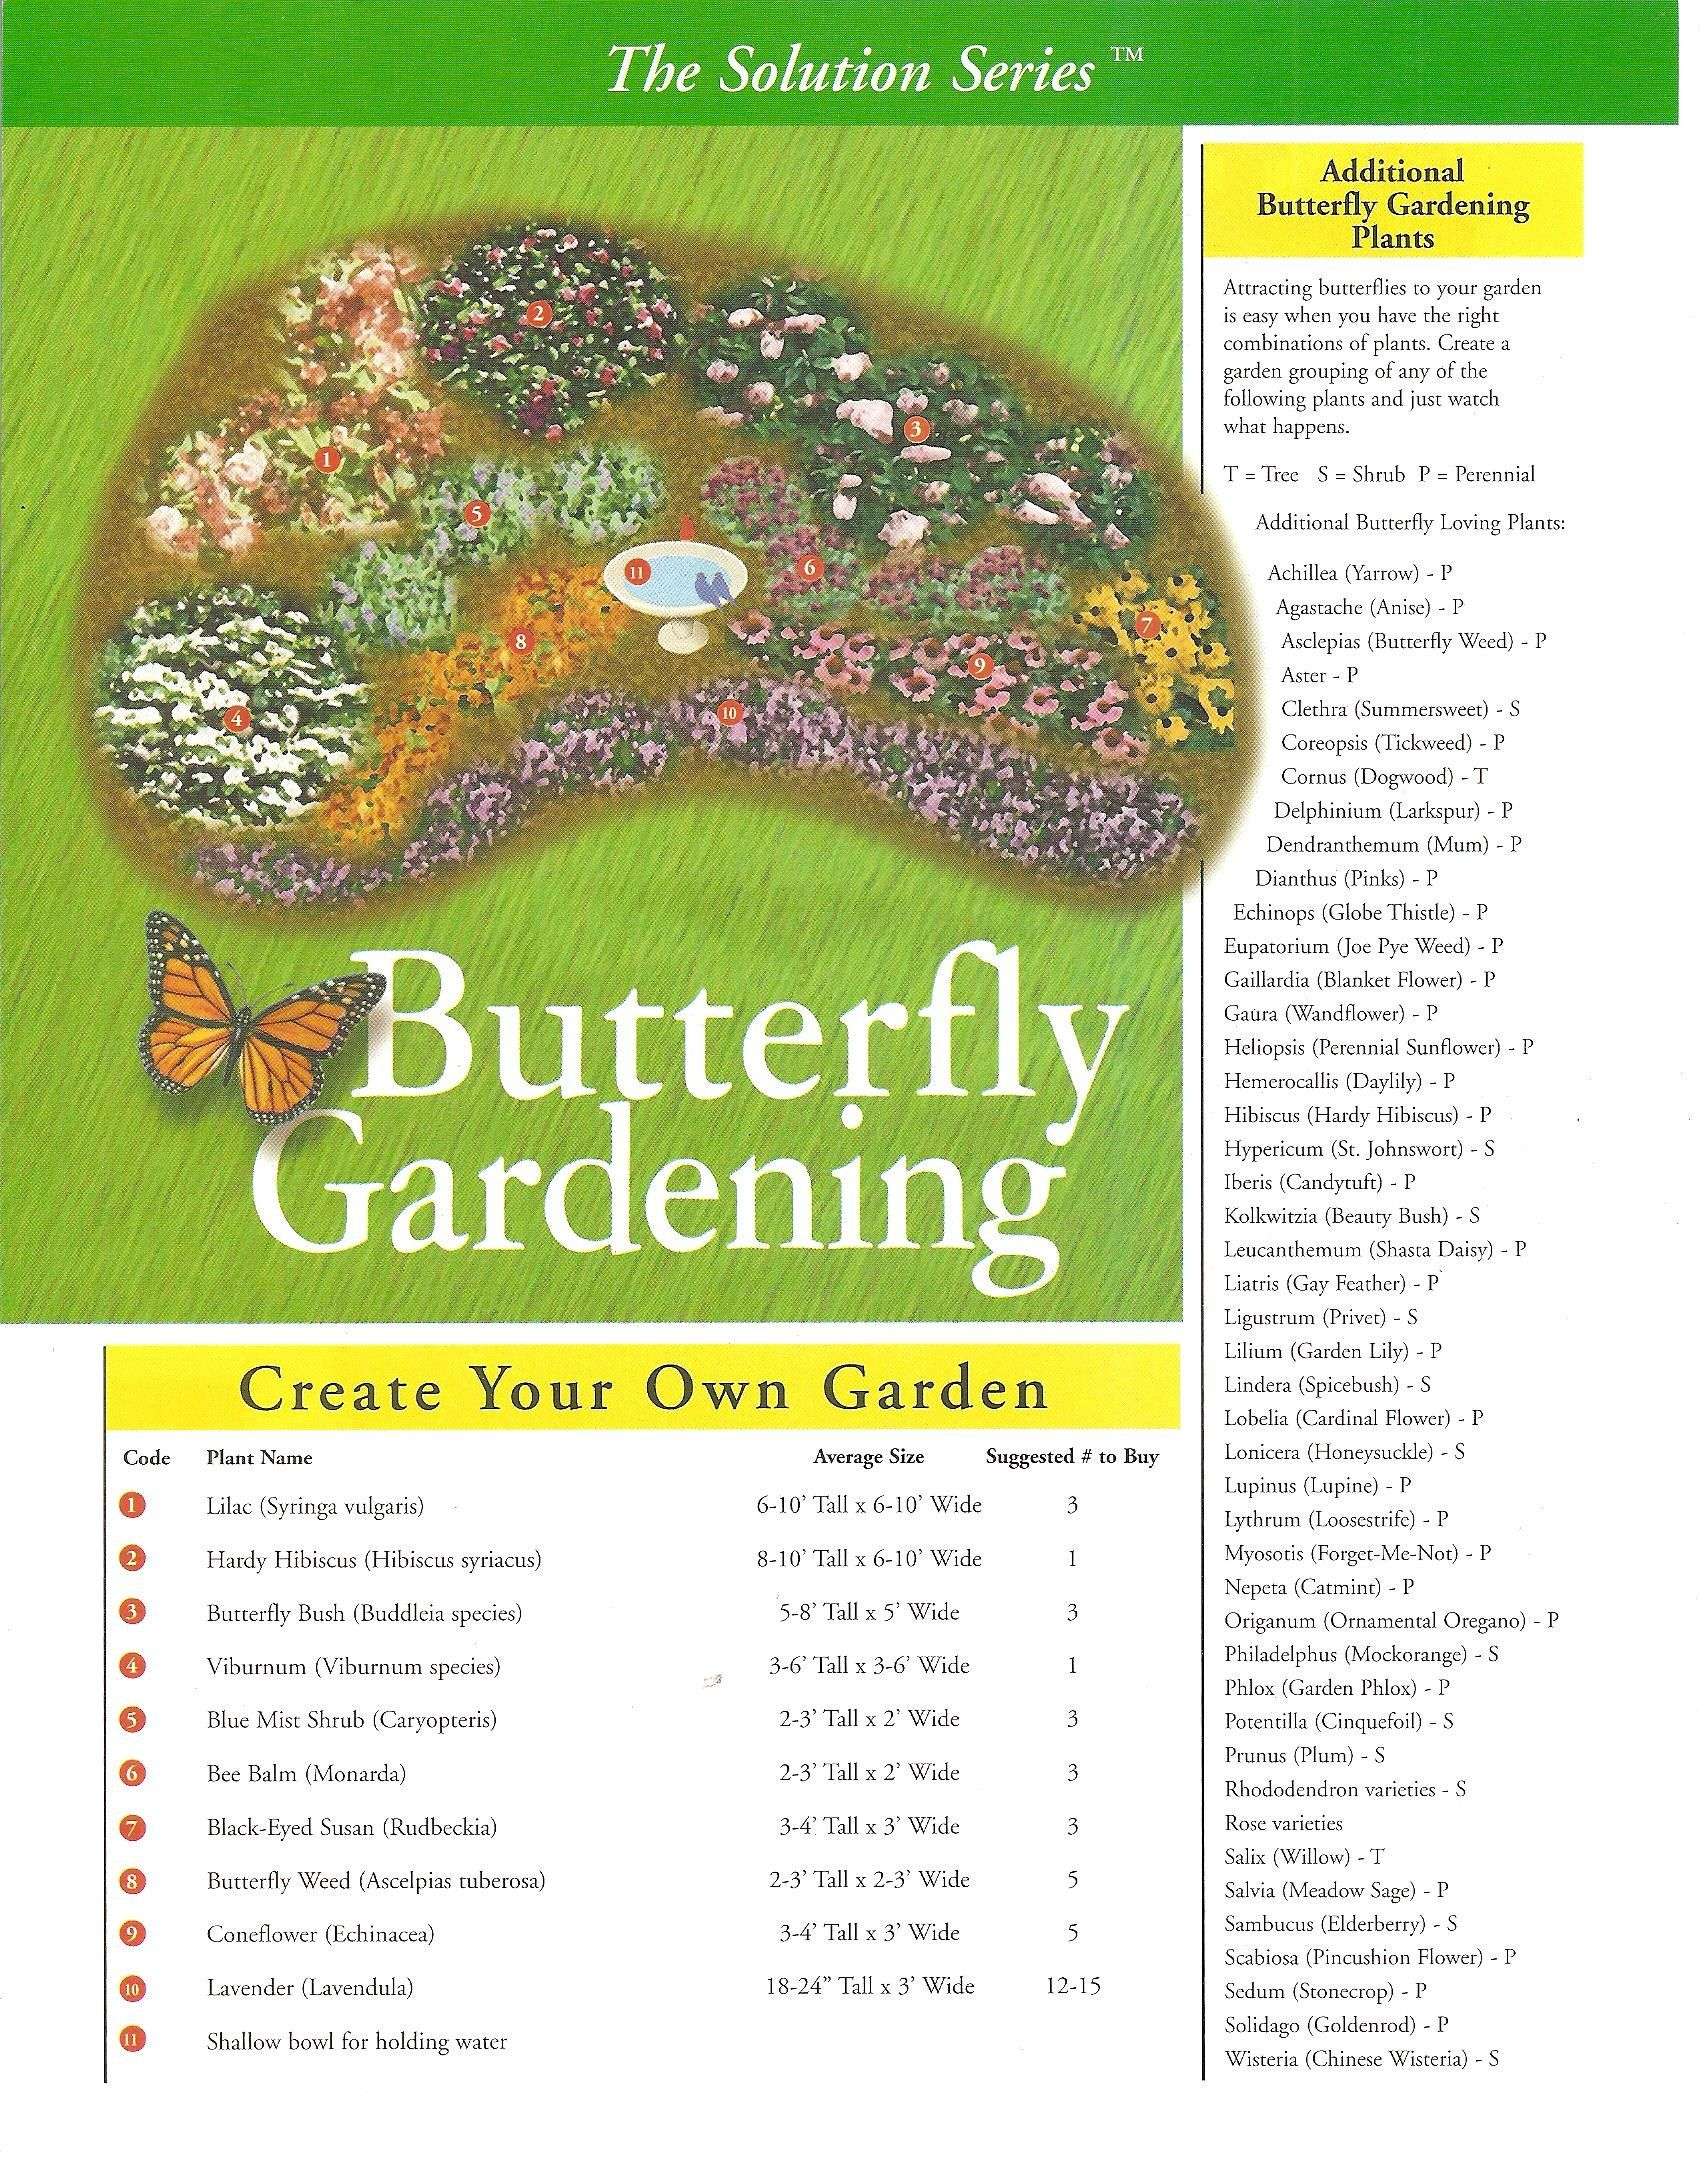 Butterfly Gardening - A list of plants that will attract butterflies to the garden.   Exactly what I need!!!!